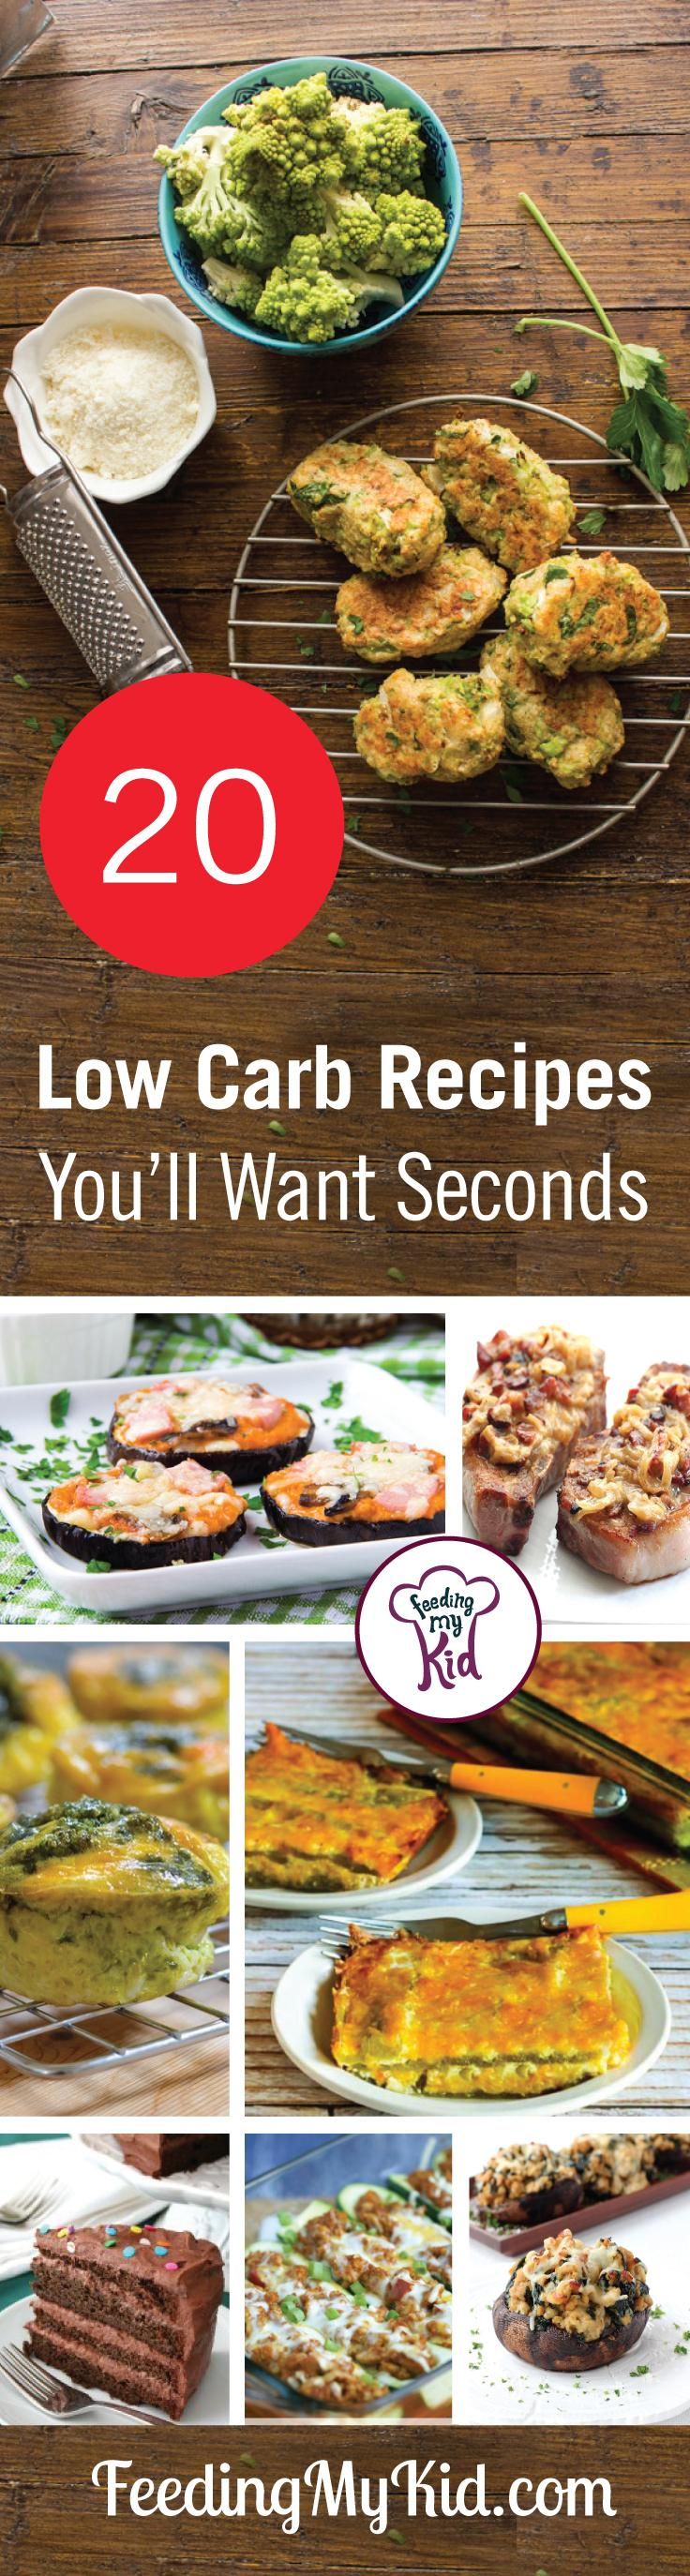 Are you or your family members on a low-carb diet? Try these tasty low-carb recipes. Low-carb doesn't have to mean boring!